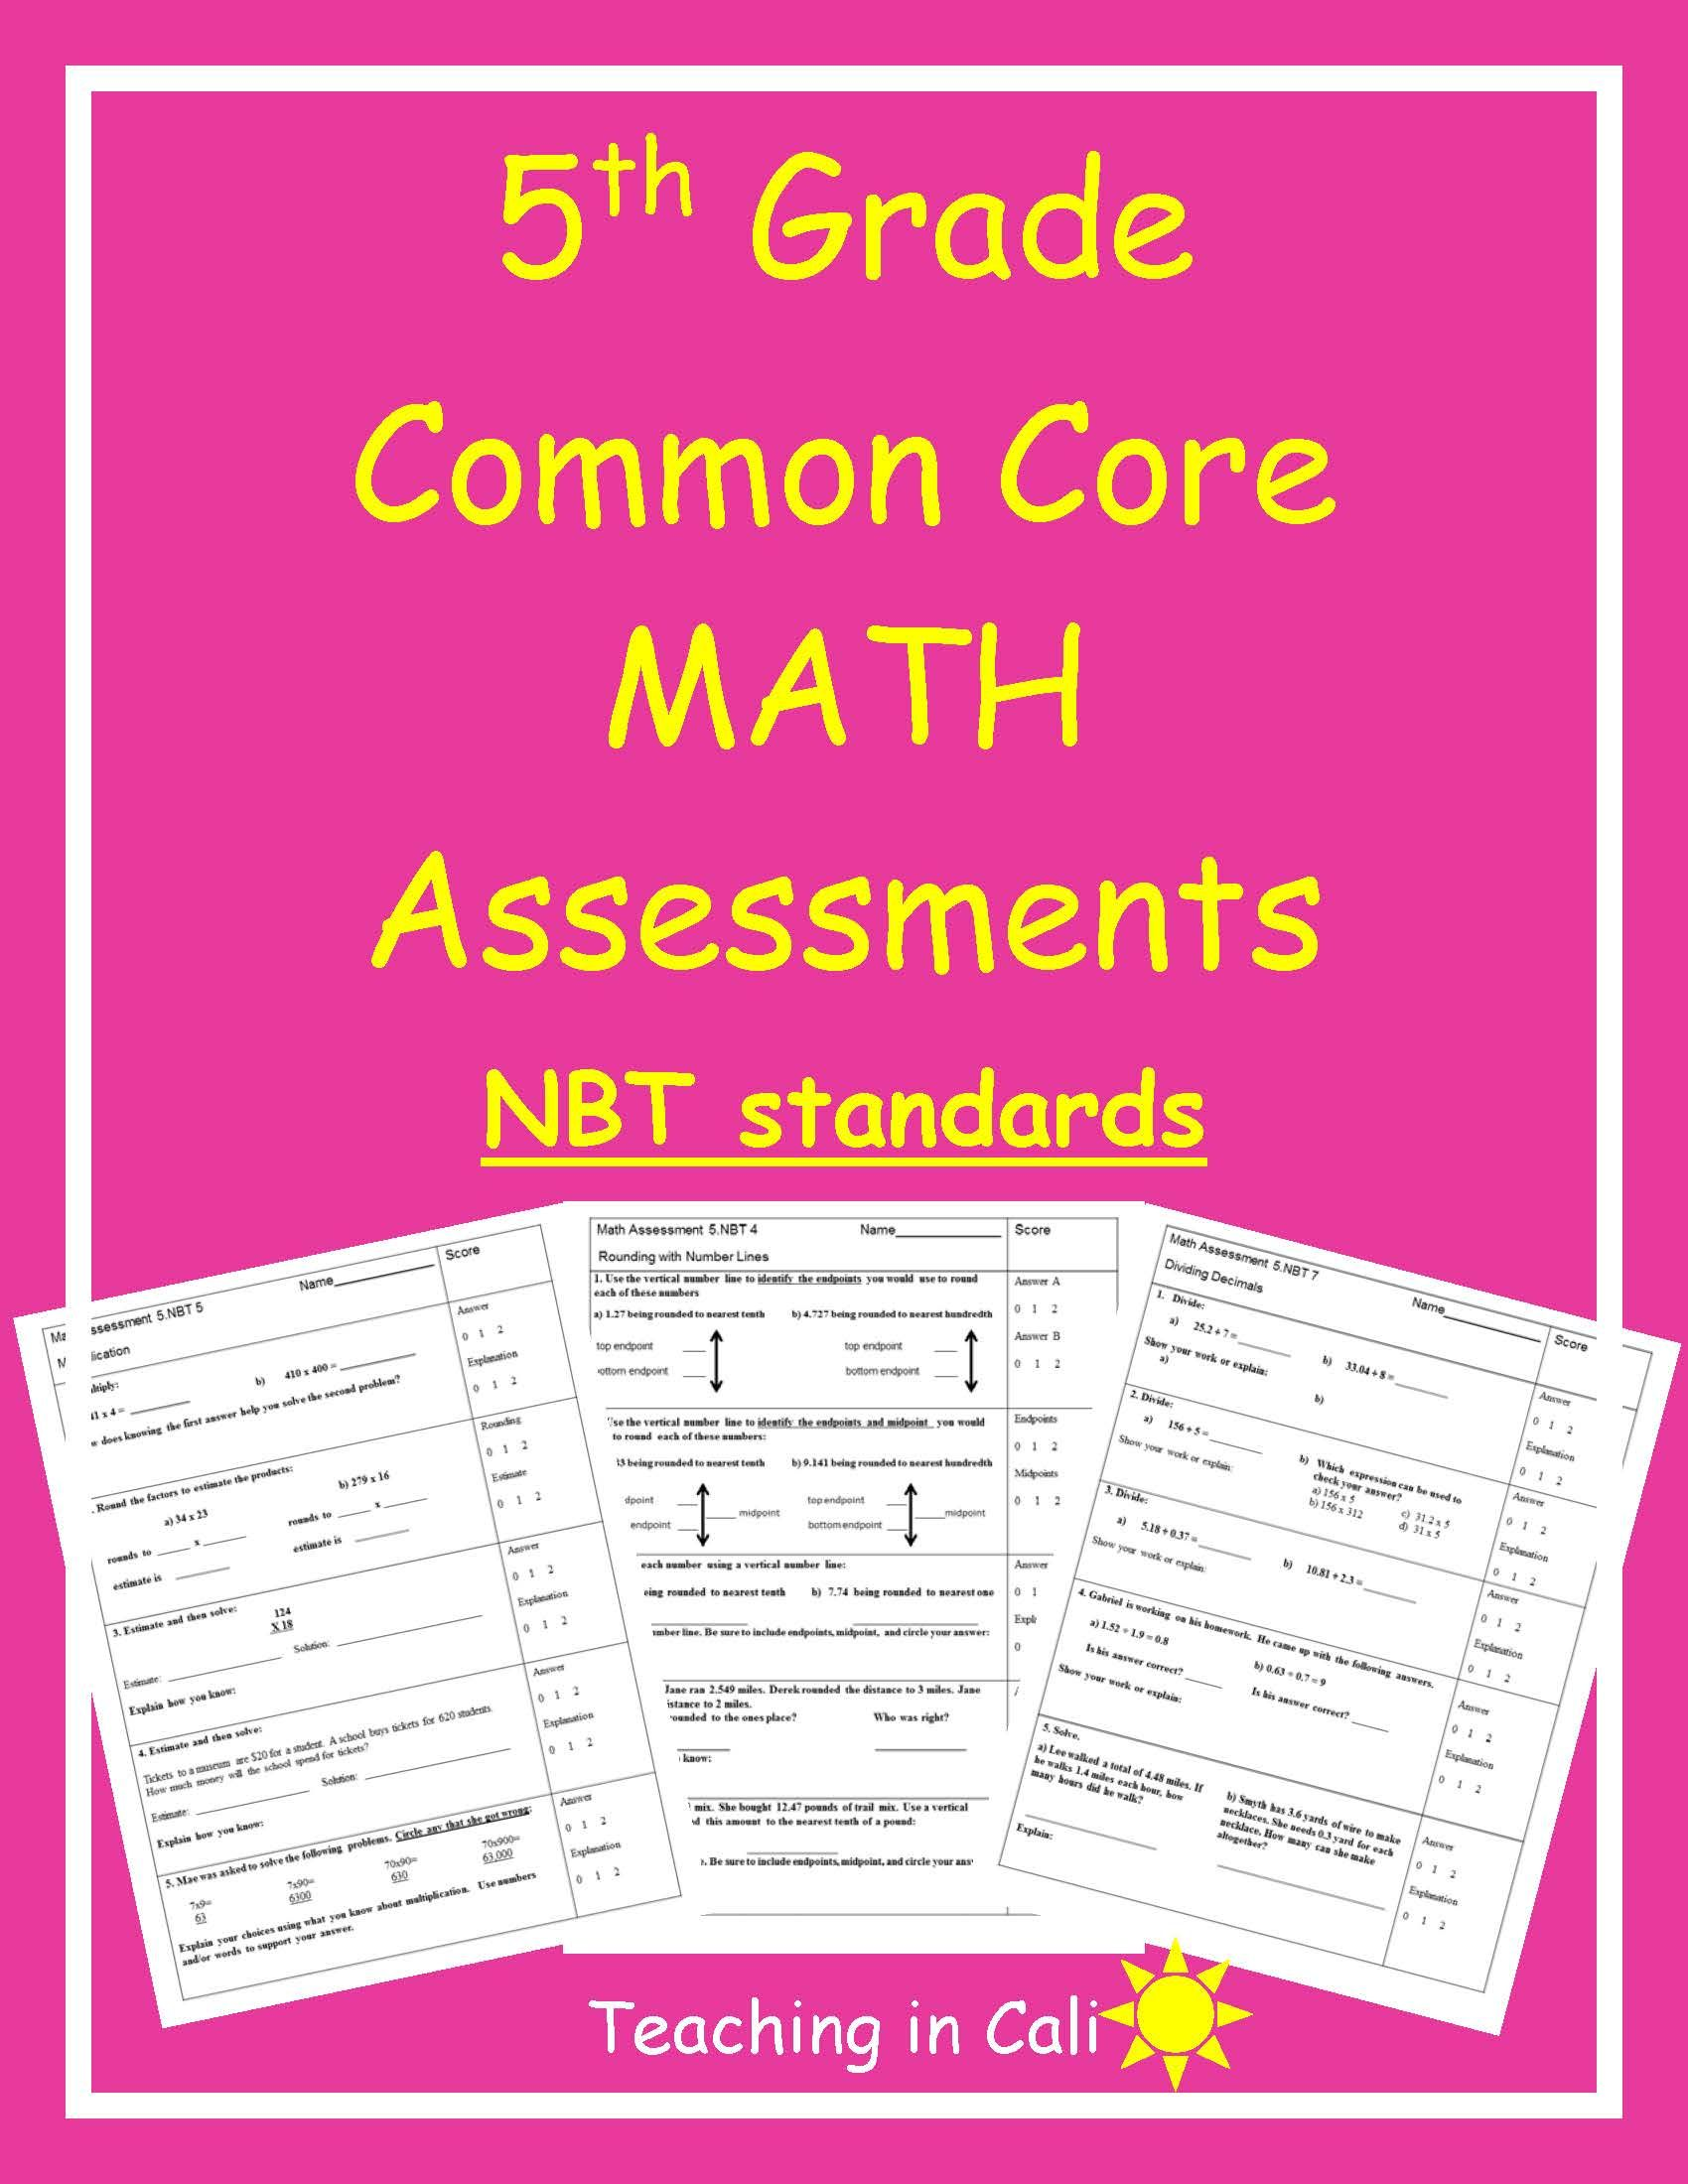 5th Grade Math Assessments Common Core Nbt Standards